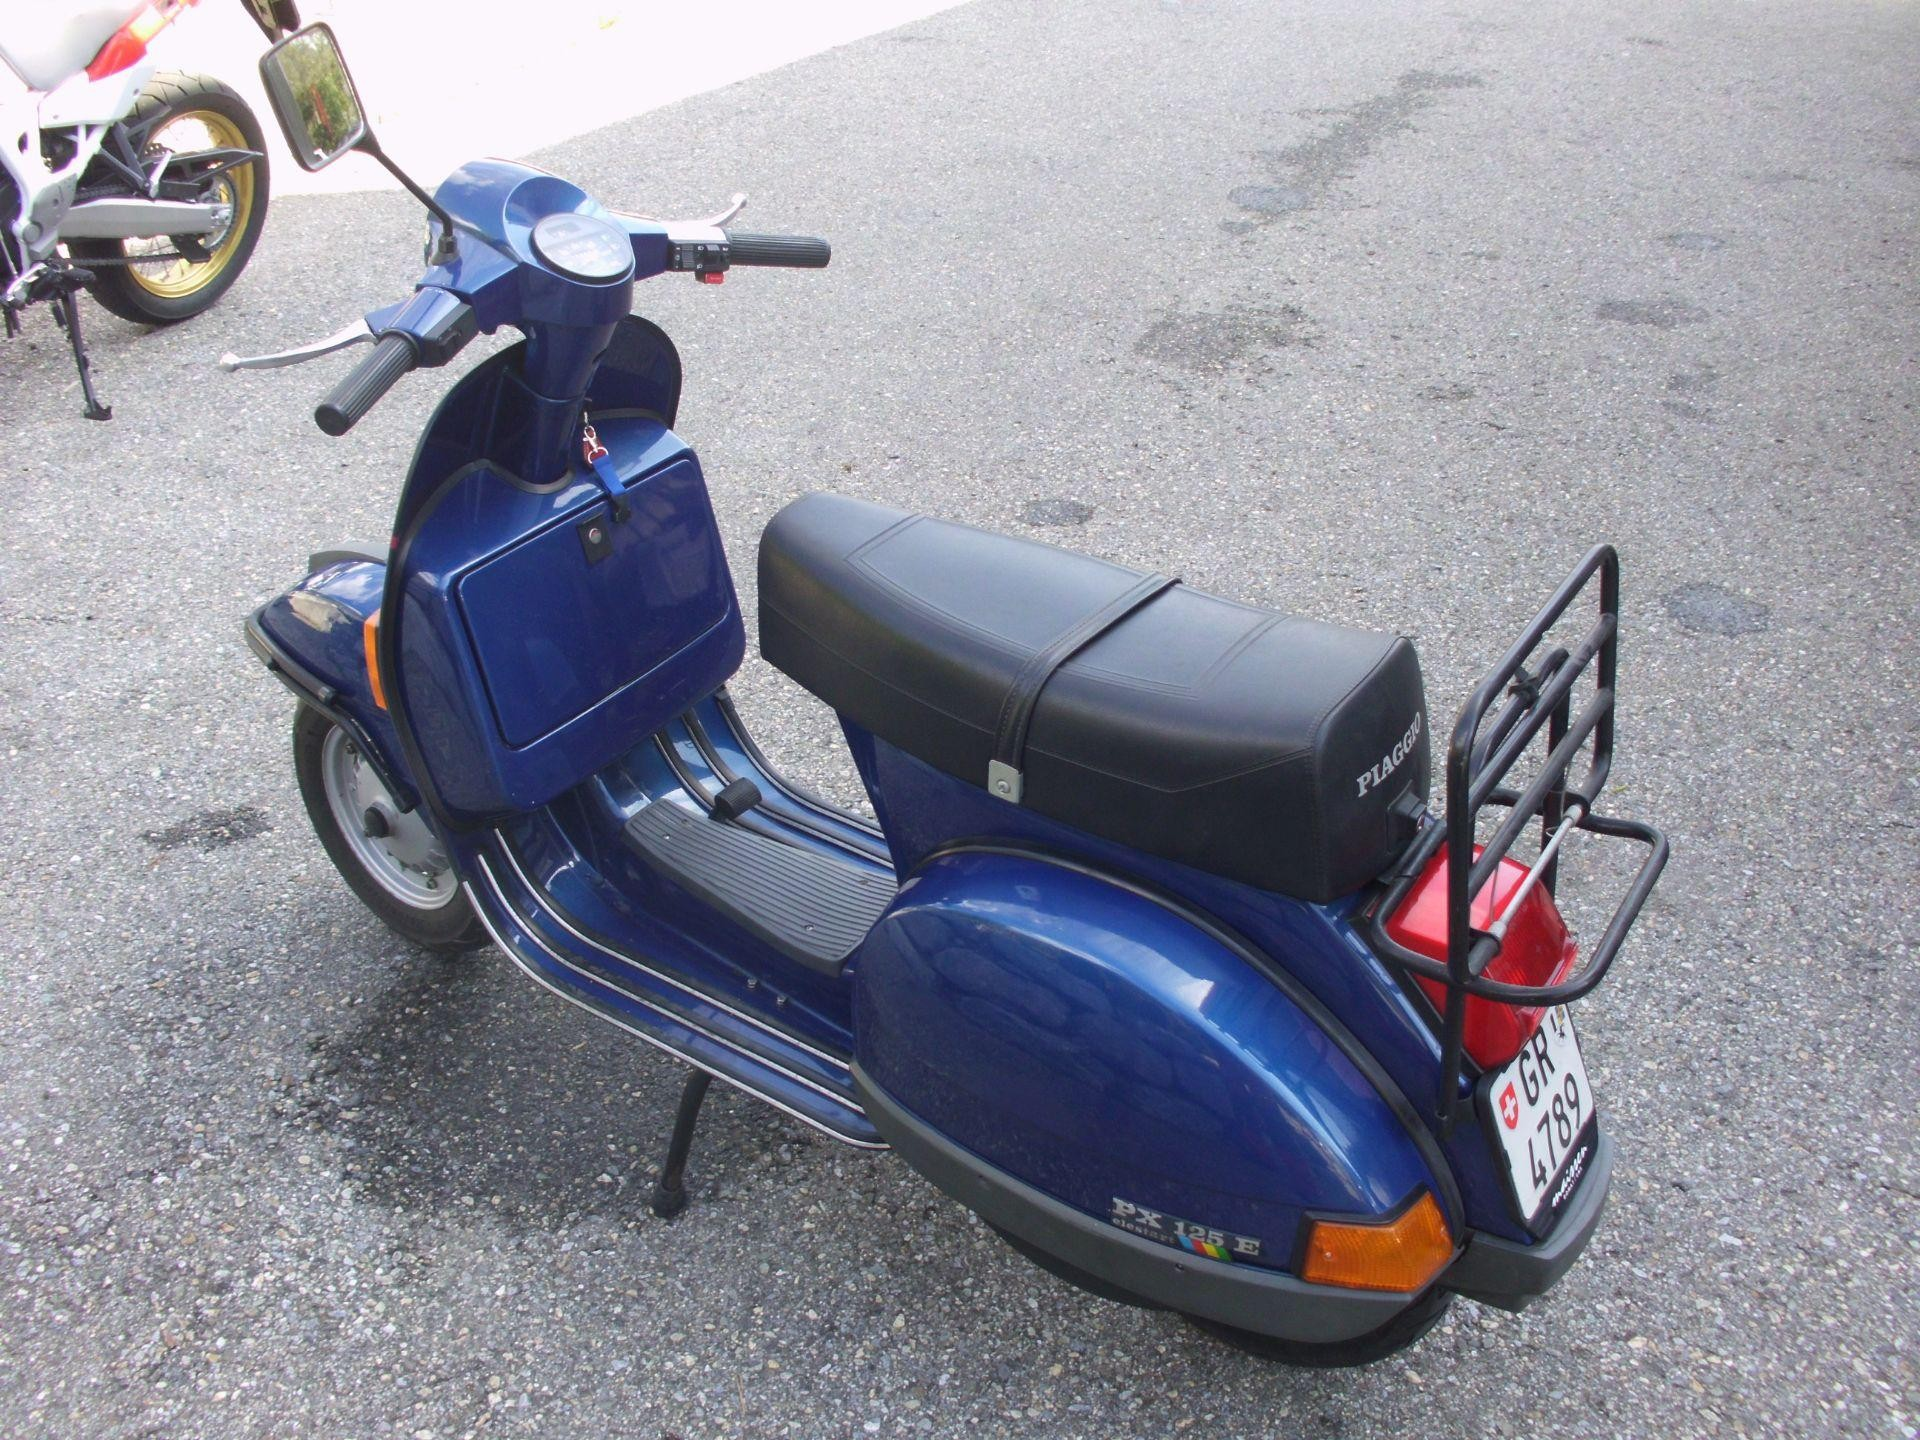 buy motorbike pre owned piaggio vespa px 125 e garage. Black Bedroom Furniture Sets. Home Design Ideas